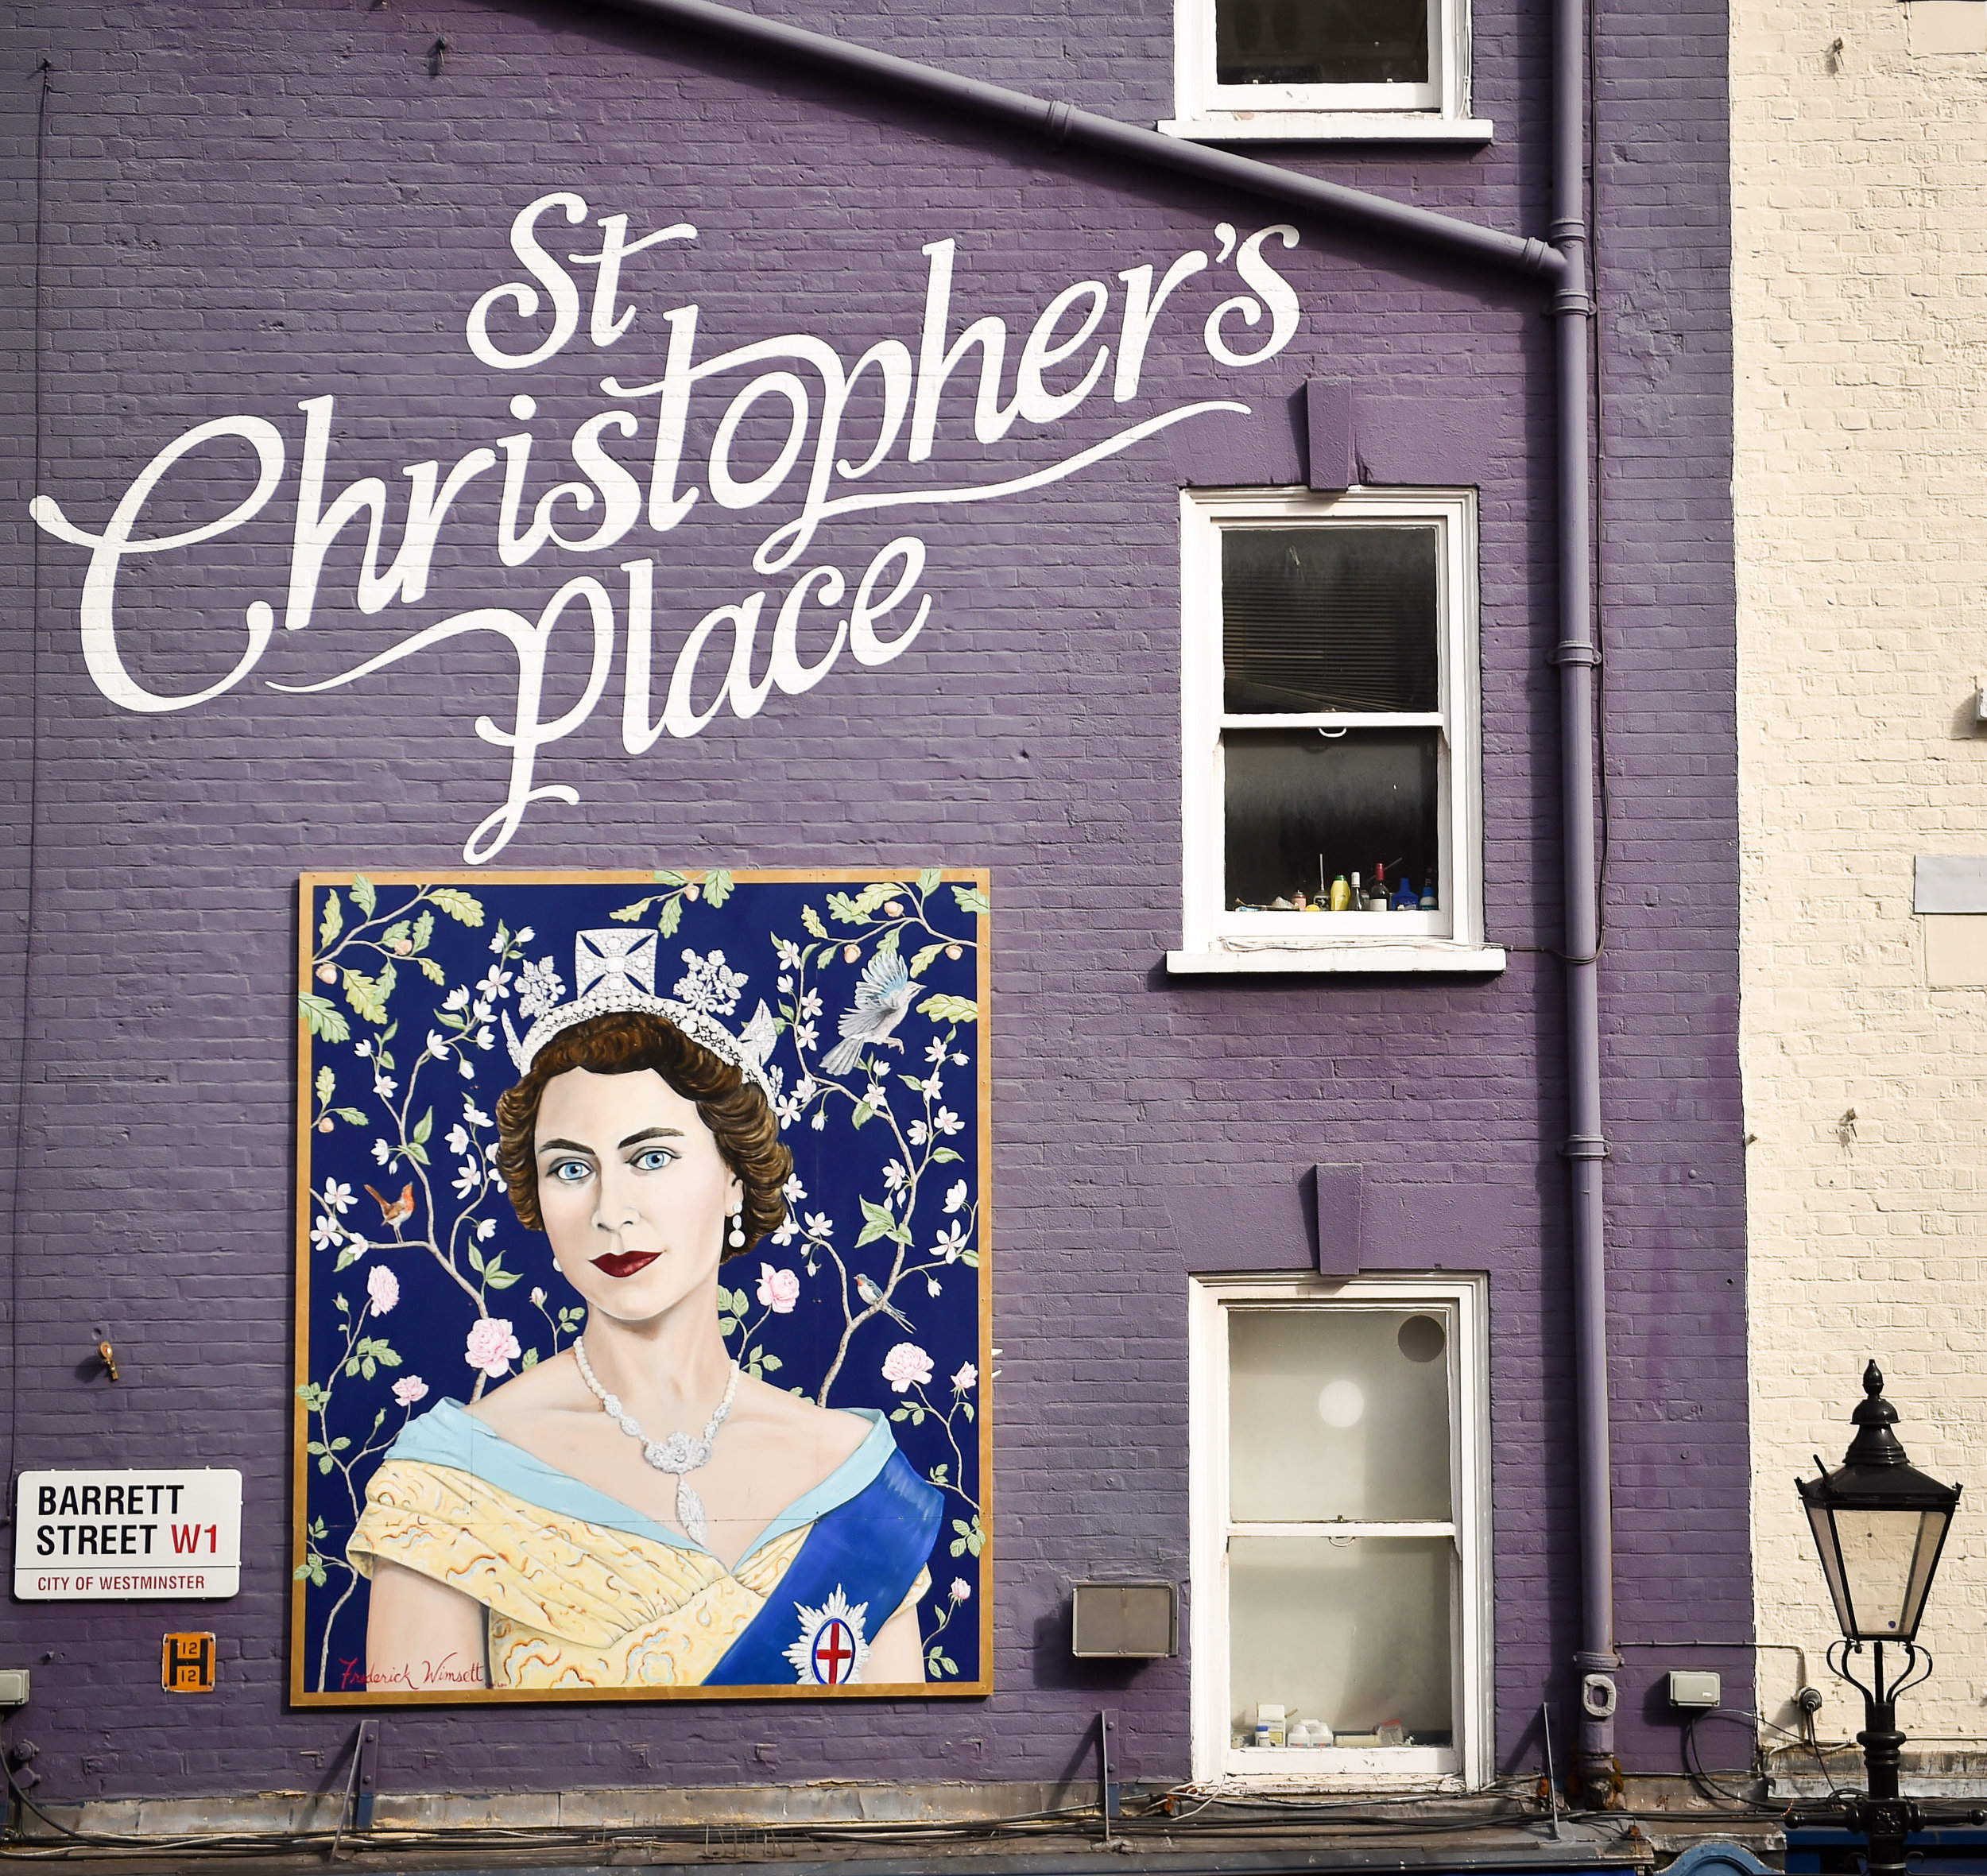 THE QUEEN AT ST. CHRISTOPHER'S PLACE